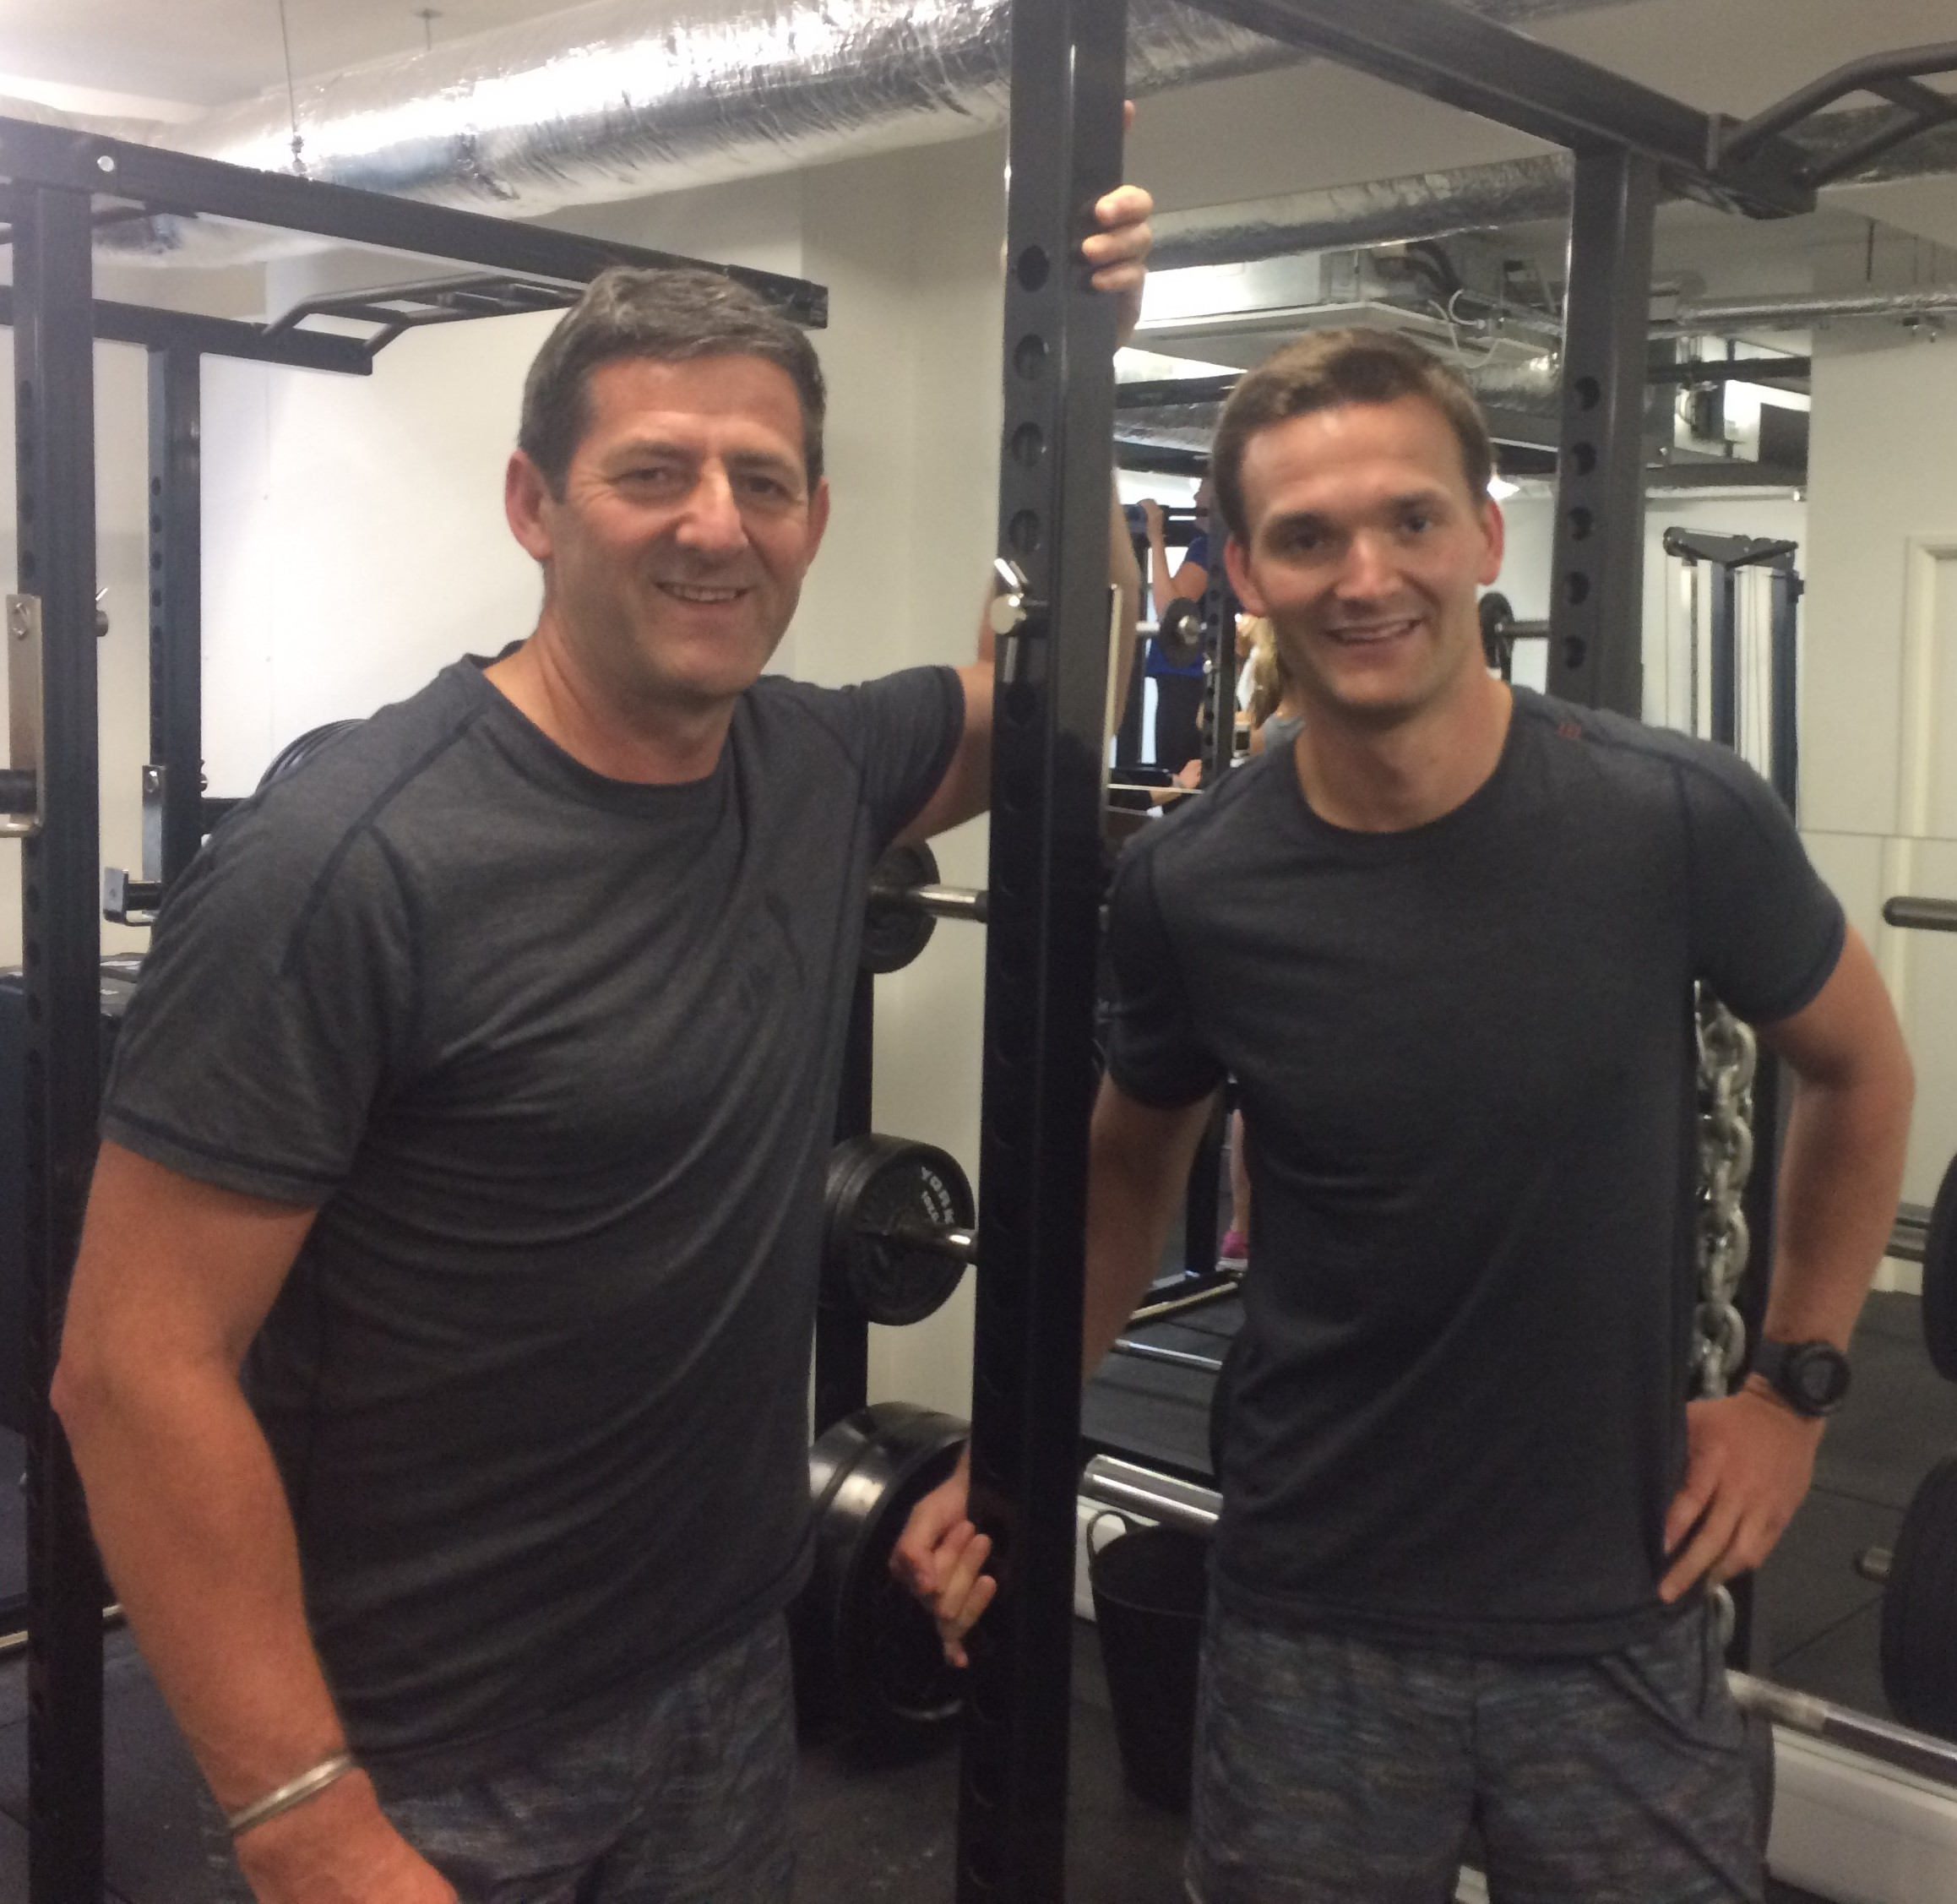 personal trainer near me london